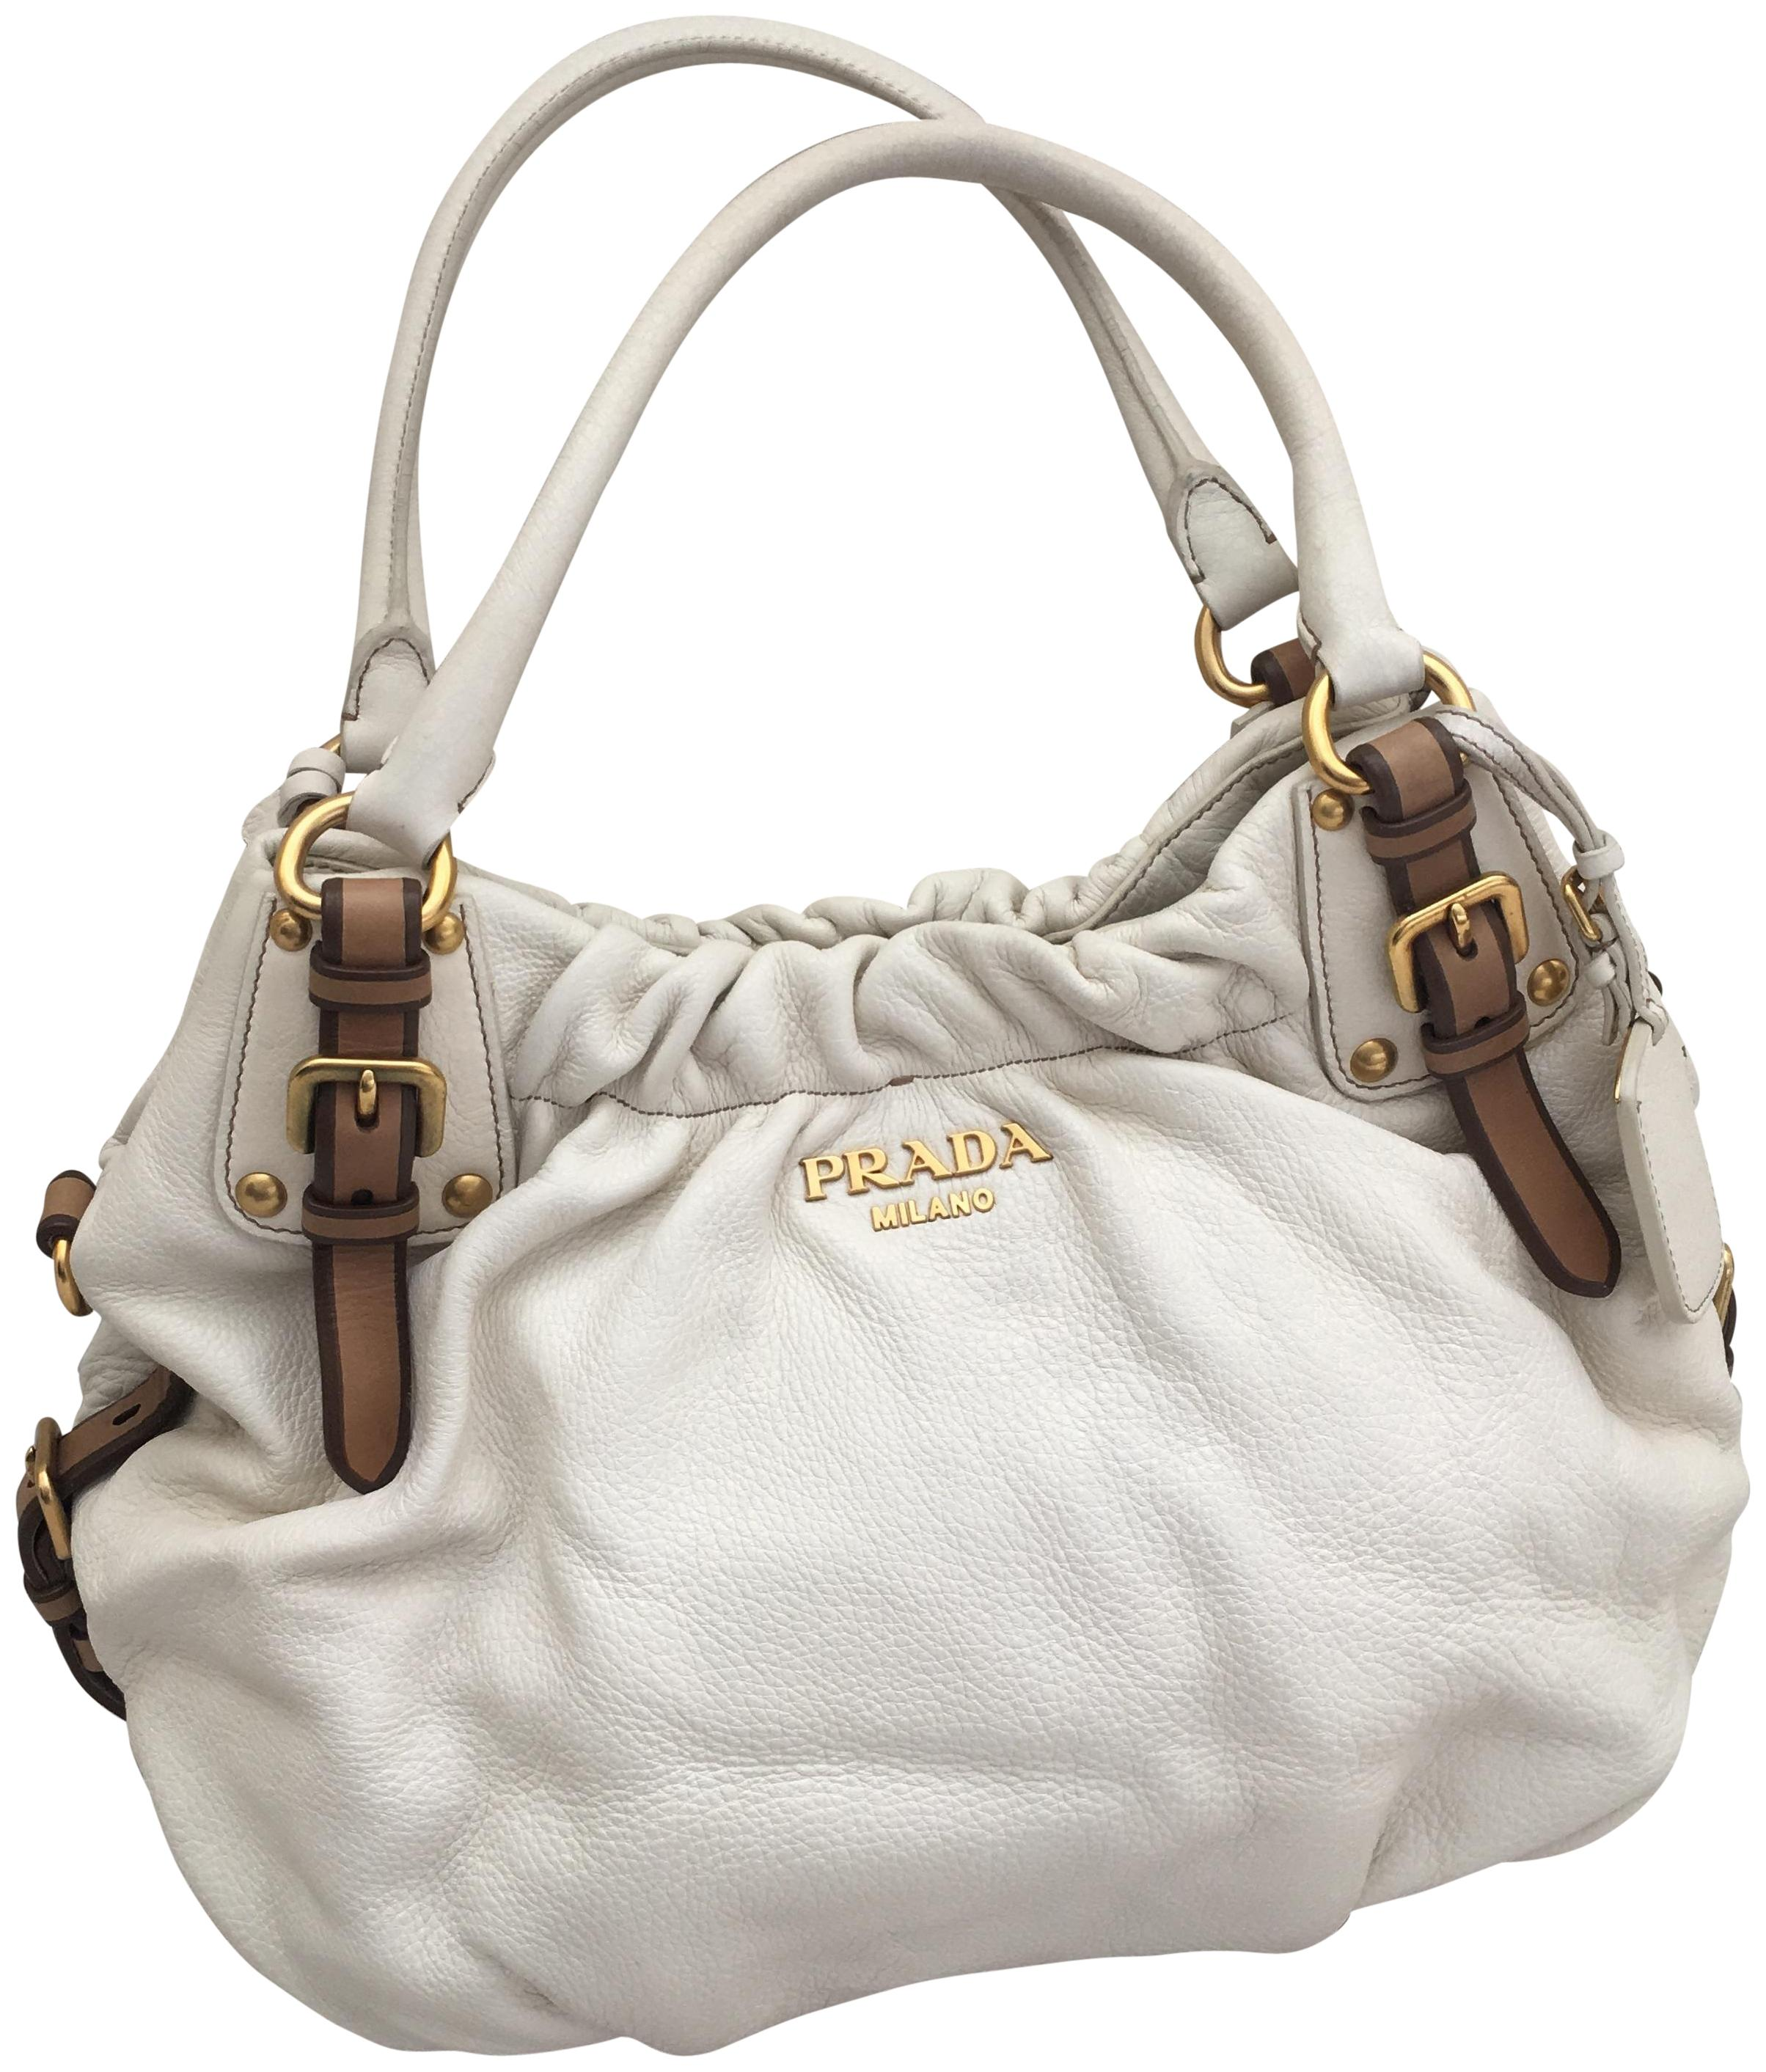 92c5bc627c60 ... hot prada deerskin tote in white ab436 d03a8